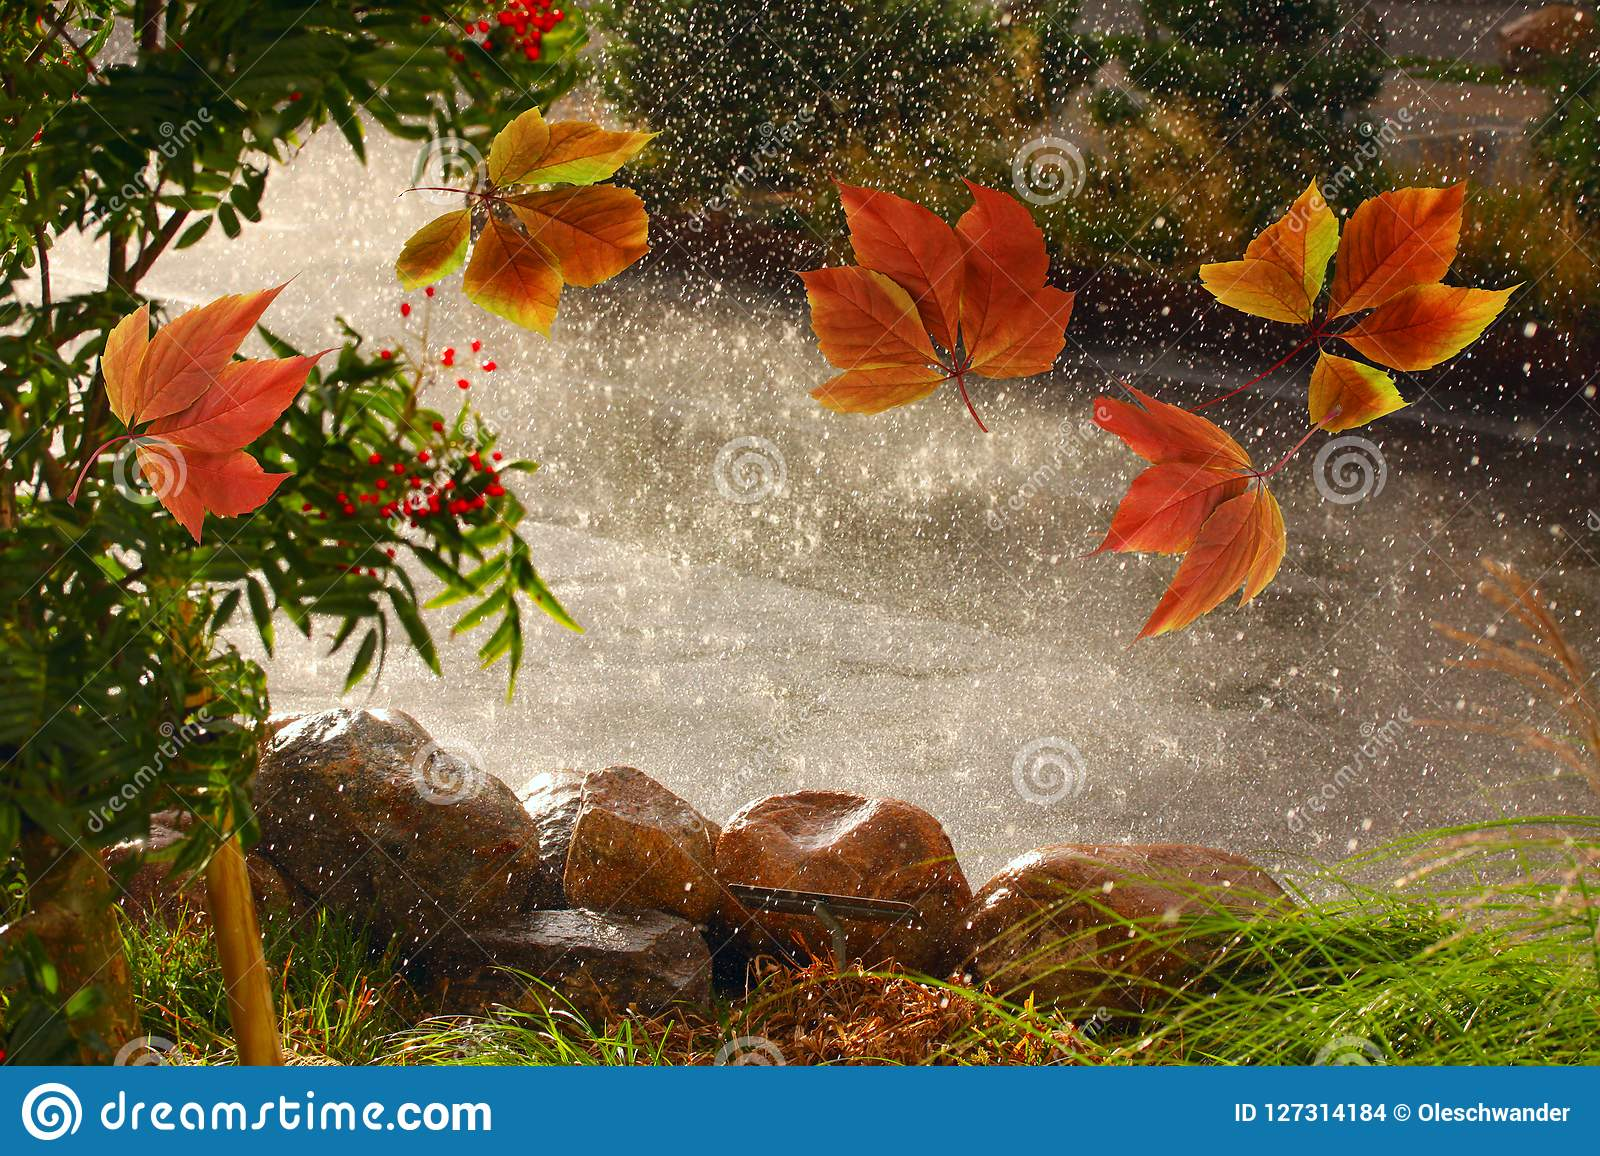 Autumn leaves blowing around in the wind i rain weather